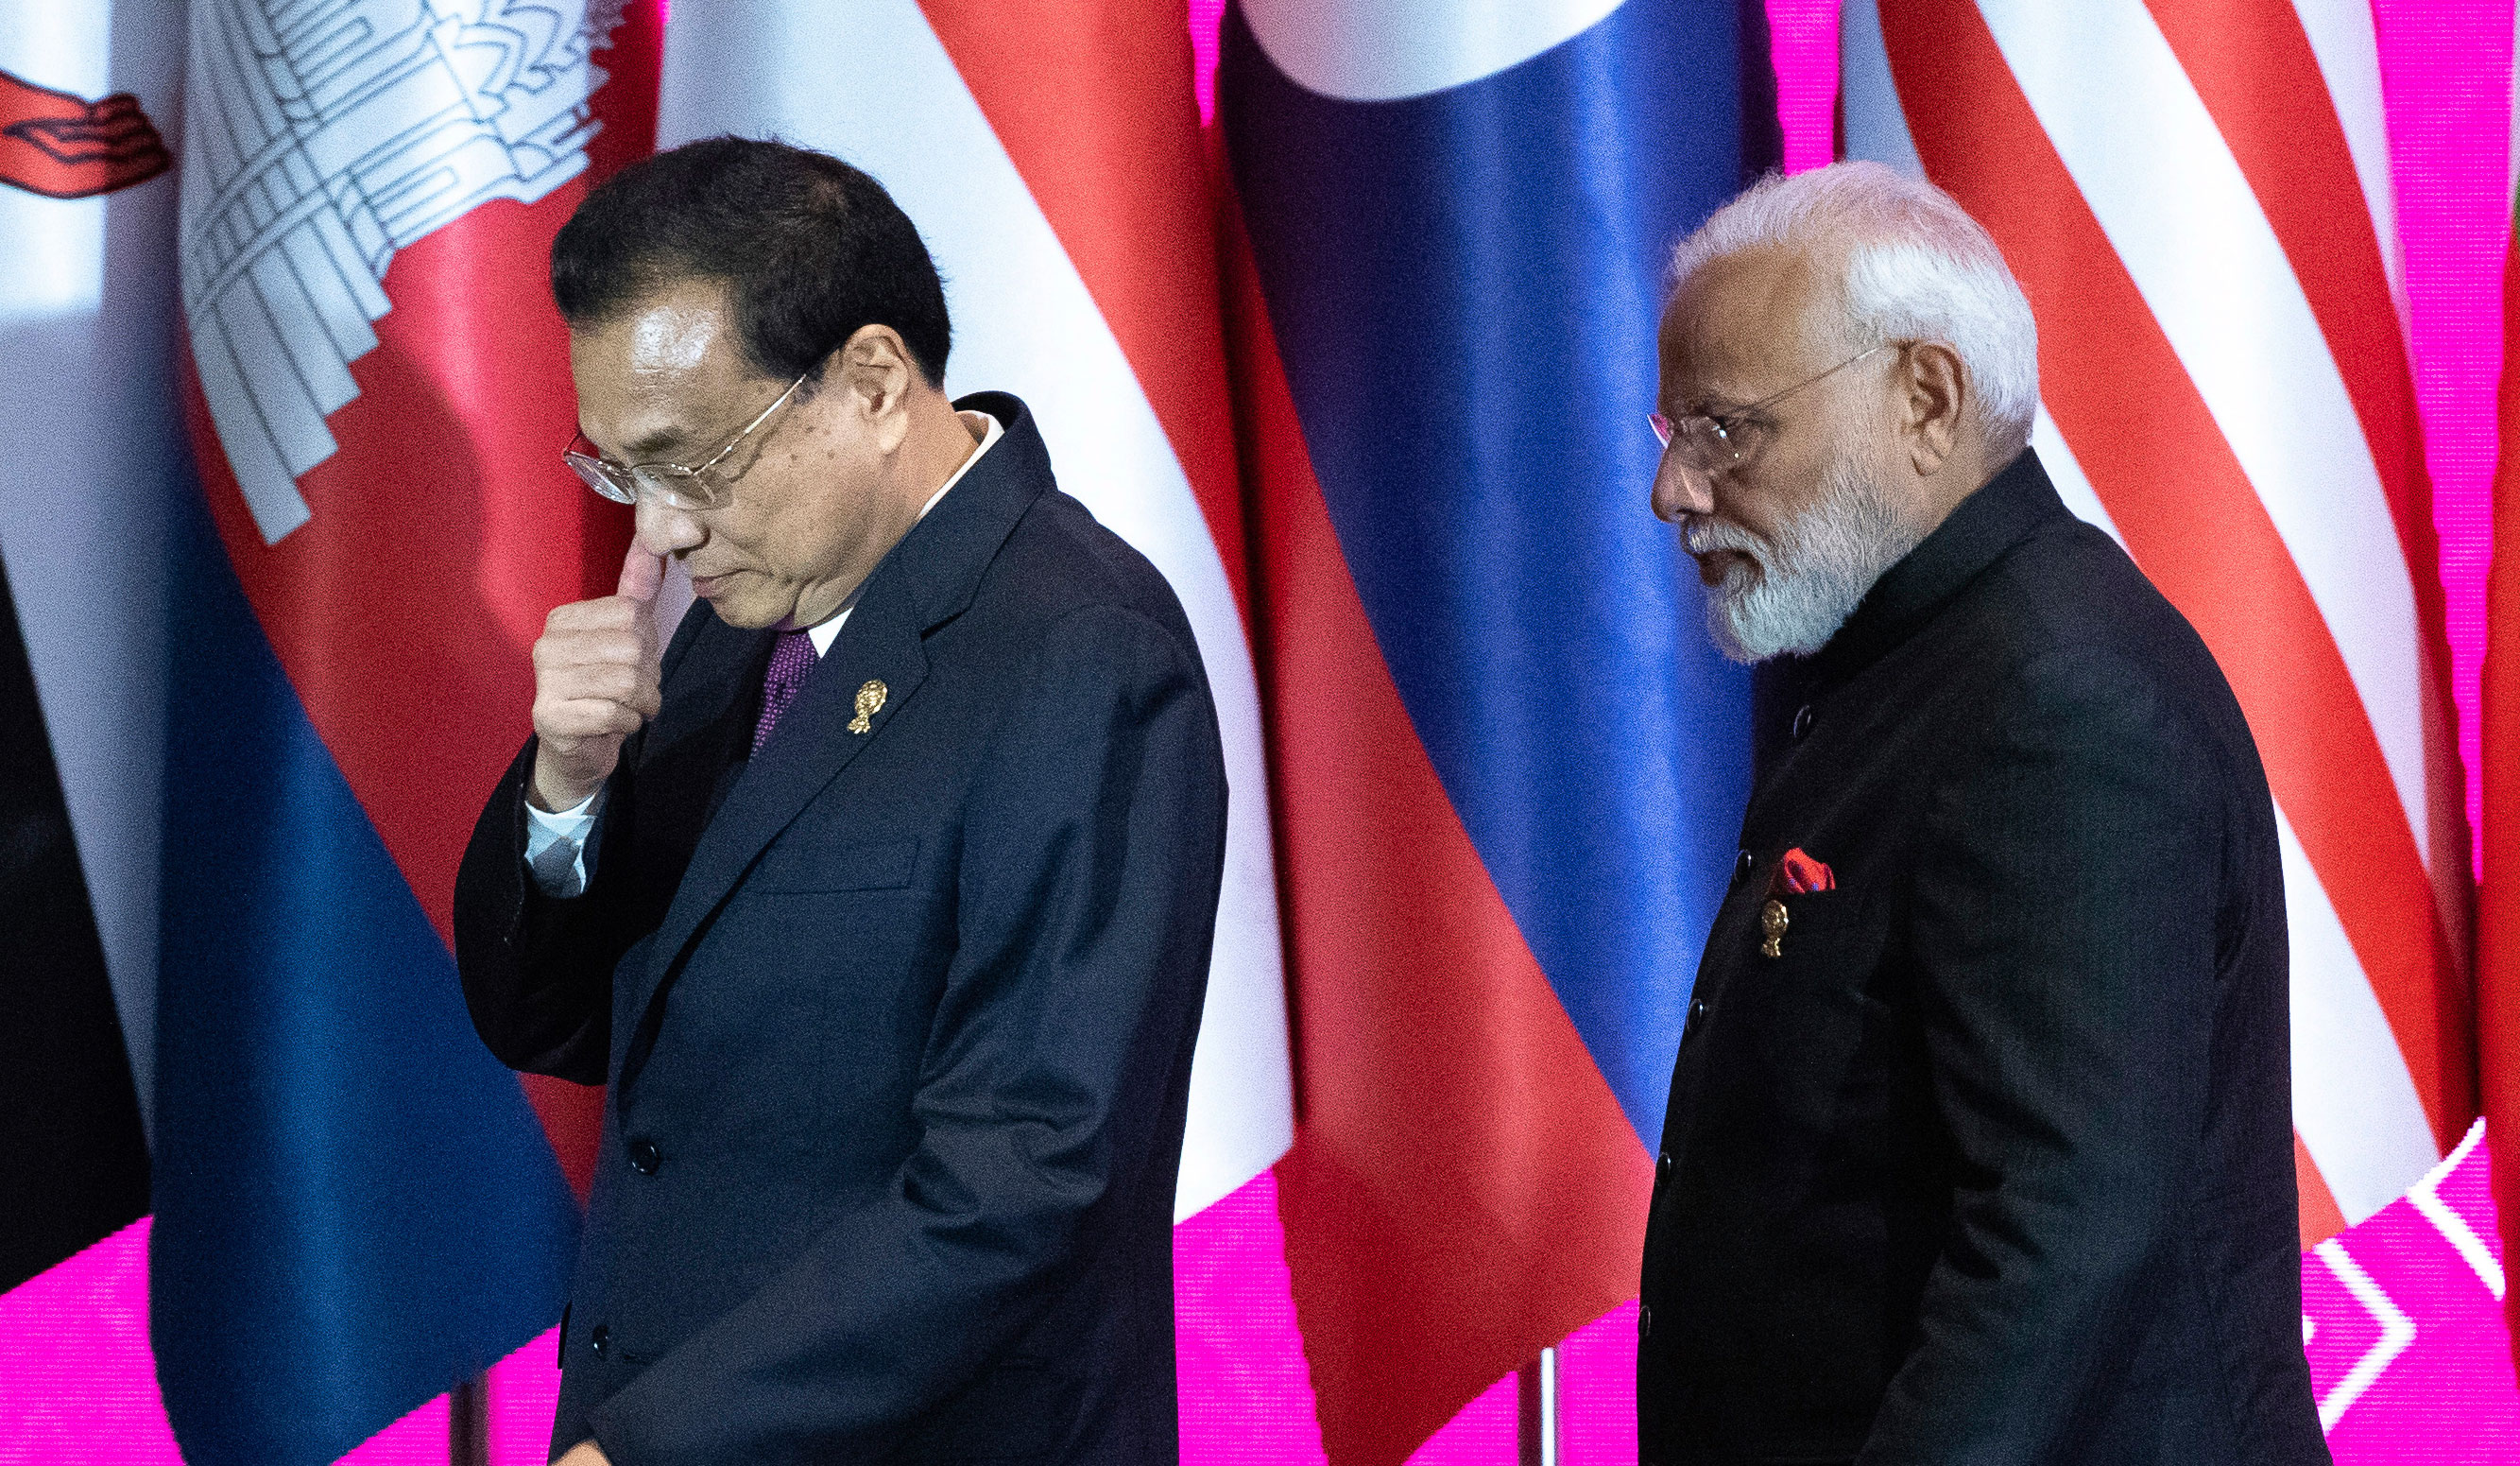 RCEP: India rightly refused to be forced into signing an imperfect deal